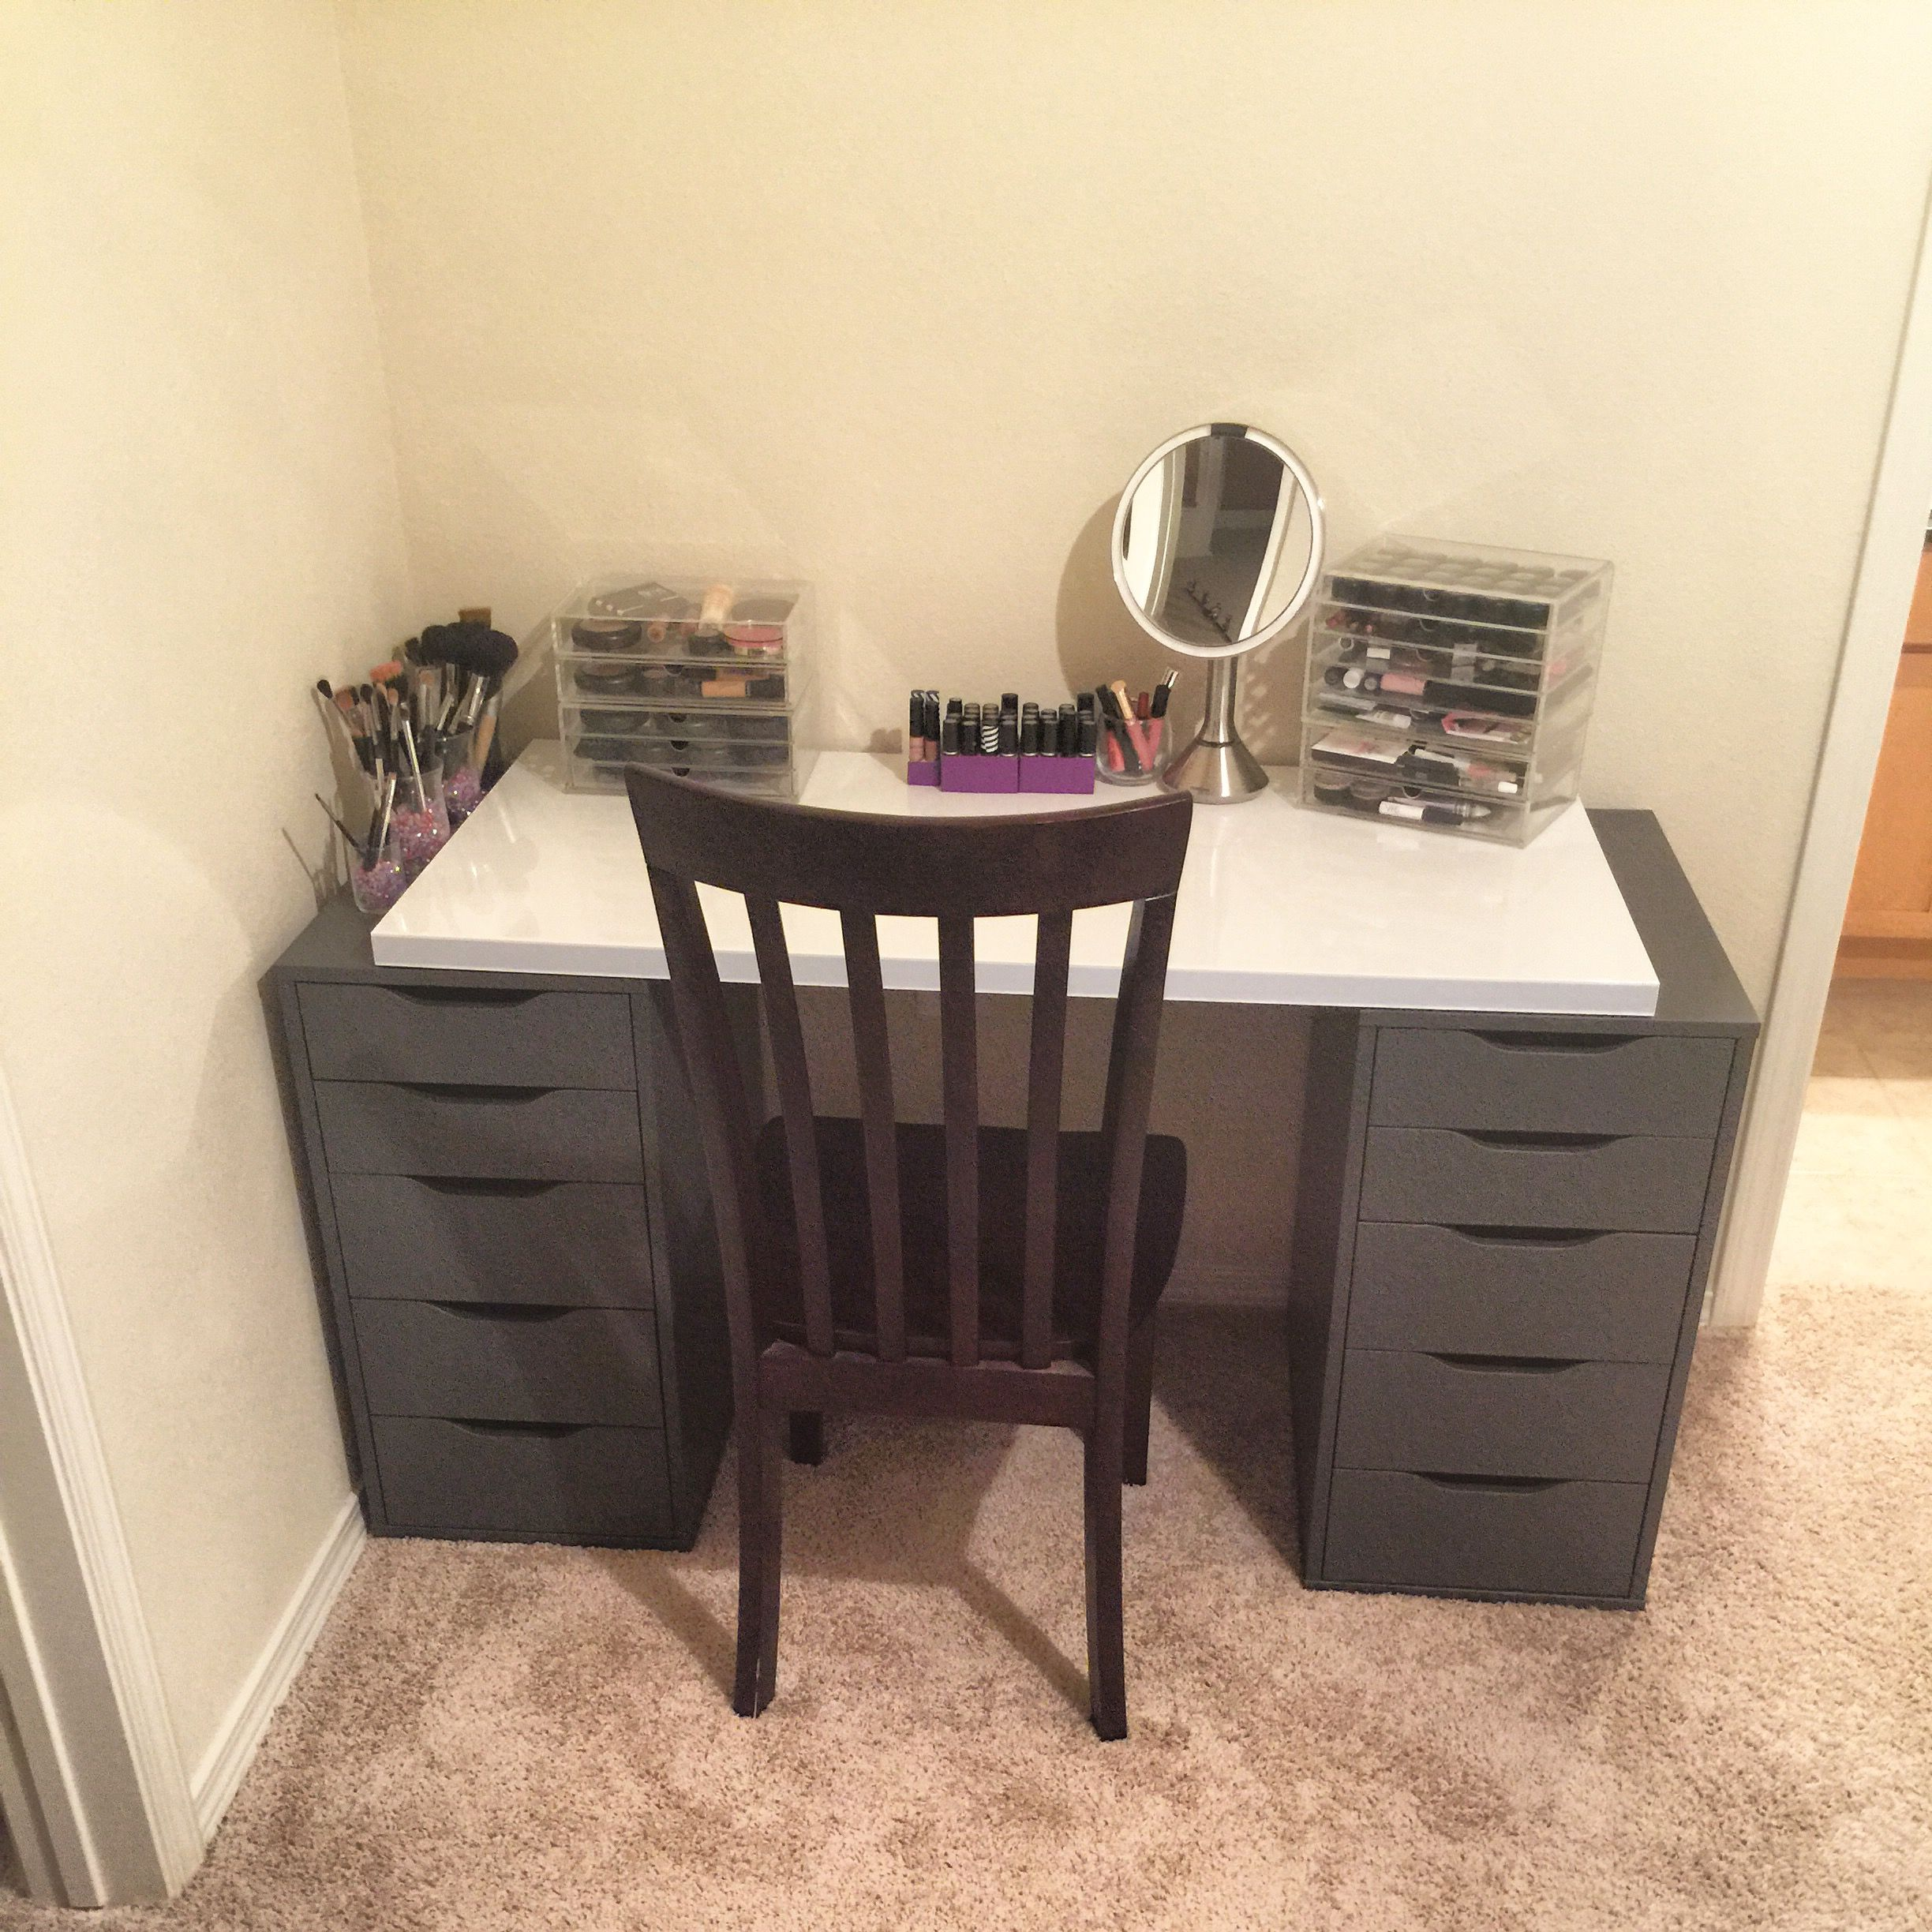 My work in progress Makeup Vanity using Ikea Alex Drawers in Gray and the Ikea Linnmon High Gloss White table top Acrylic drawers from muji and vanity